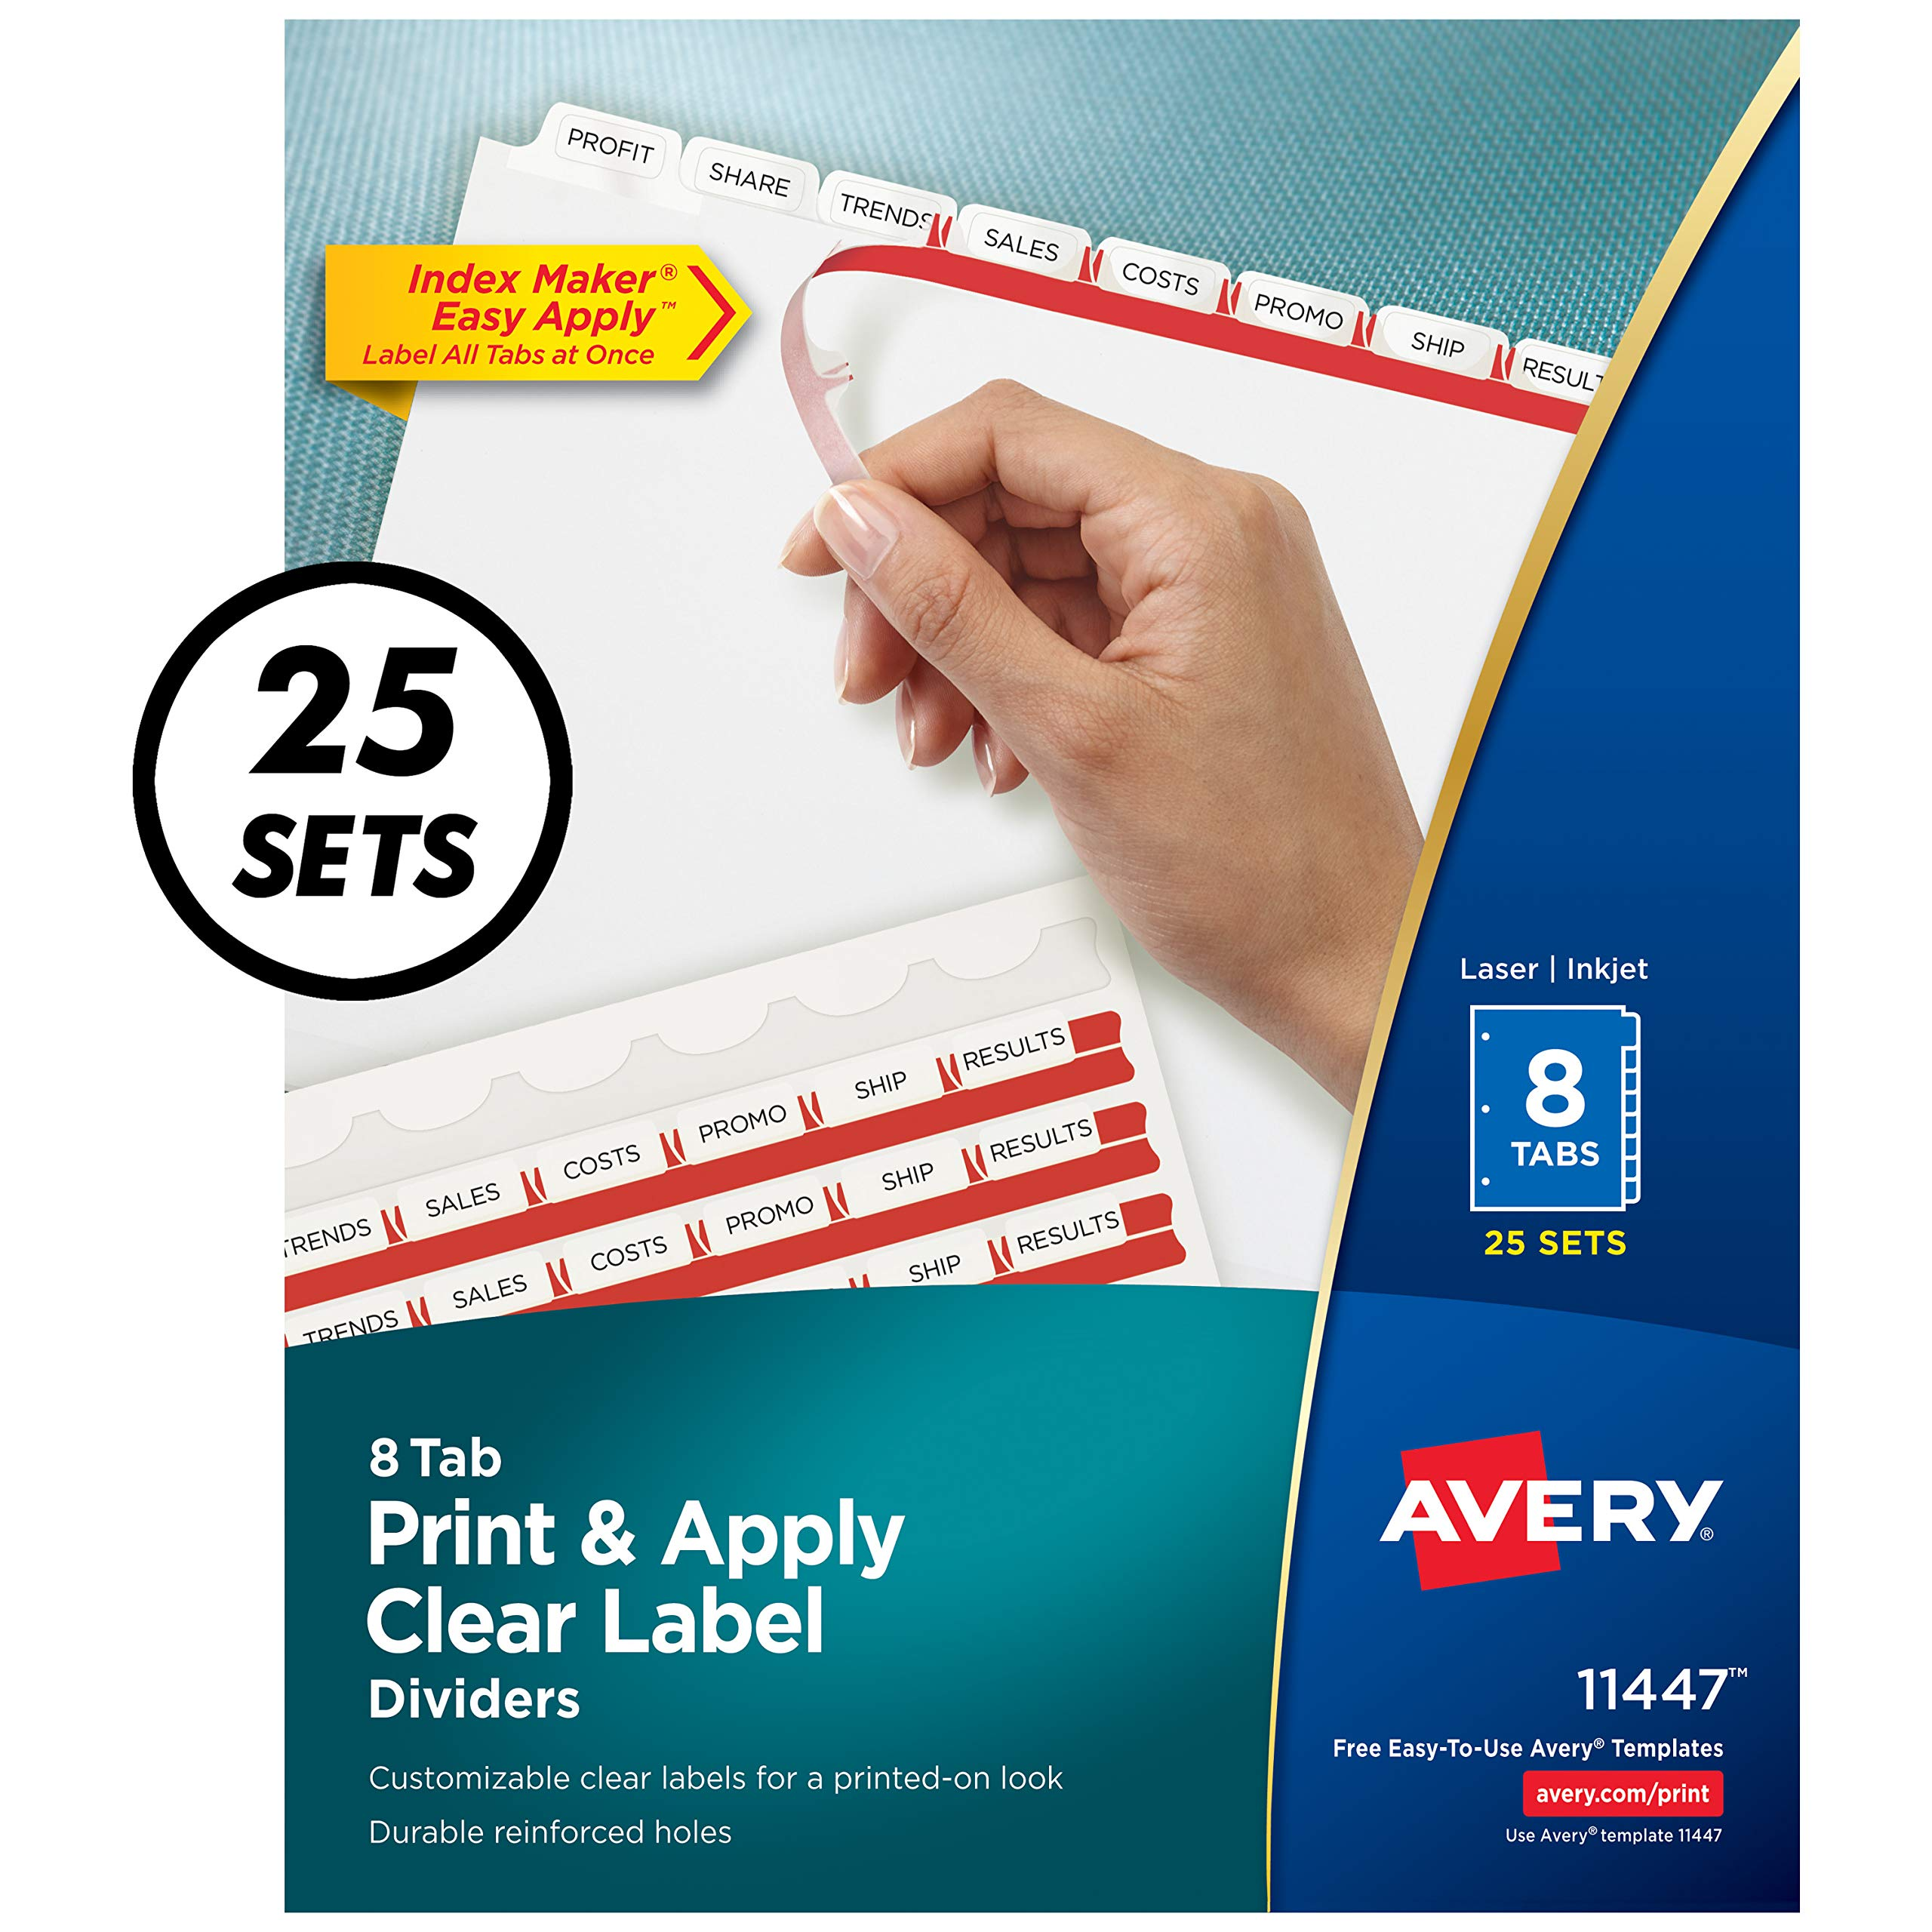 Avery 8-Tab Binder Dividers, Easy Print & Apply Clear Label Strip, Index Maker, White Tabs, 25 Sets (11447) by Avery